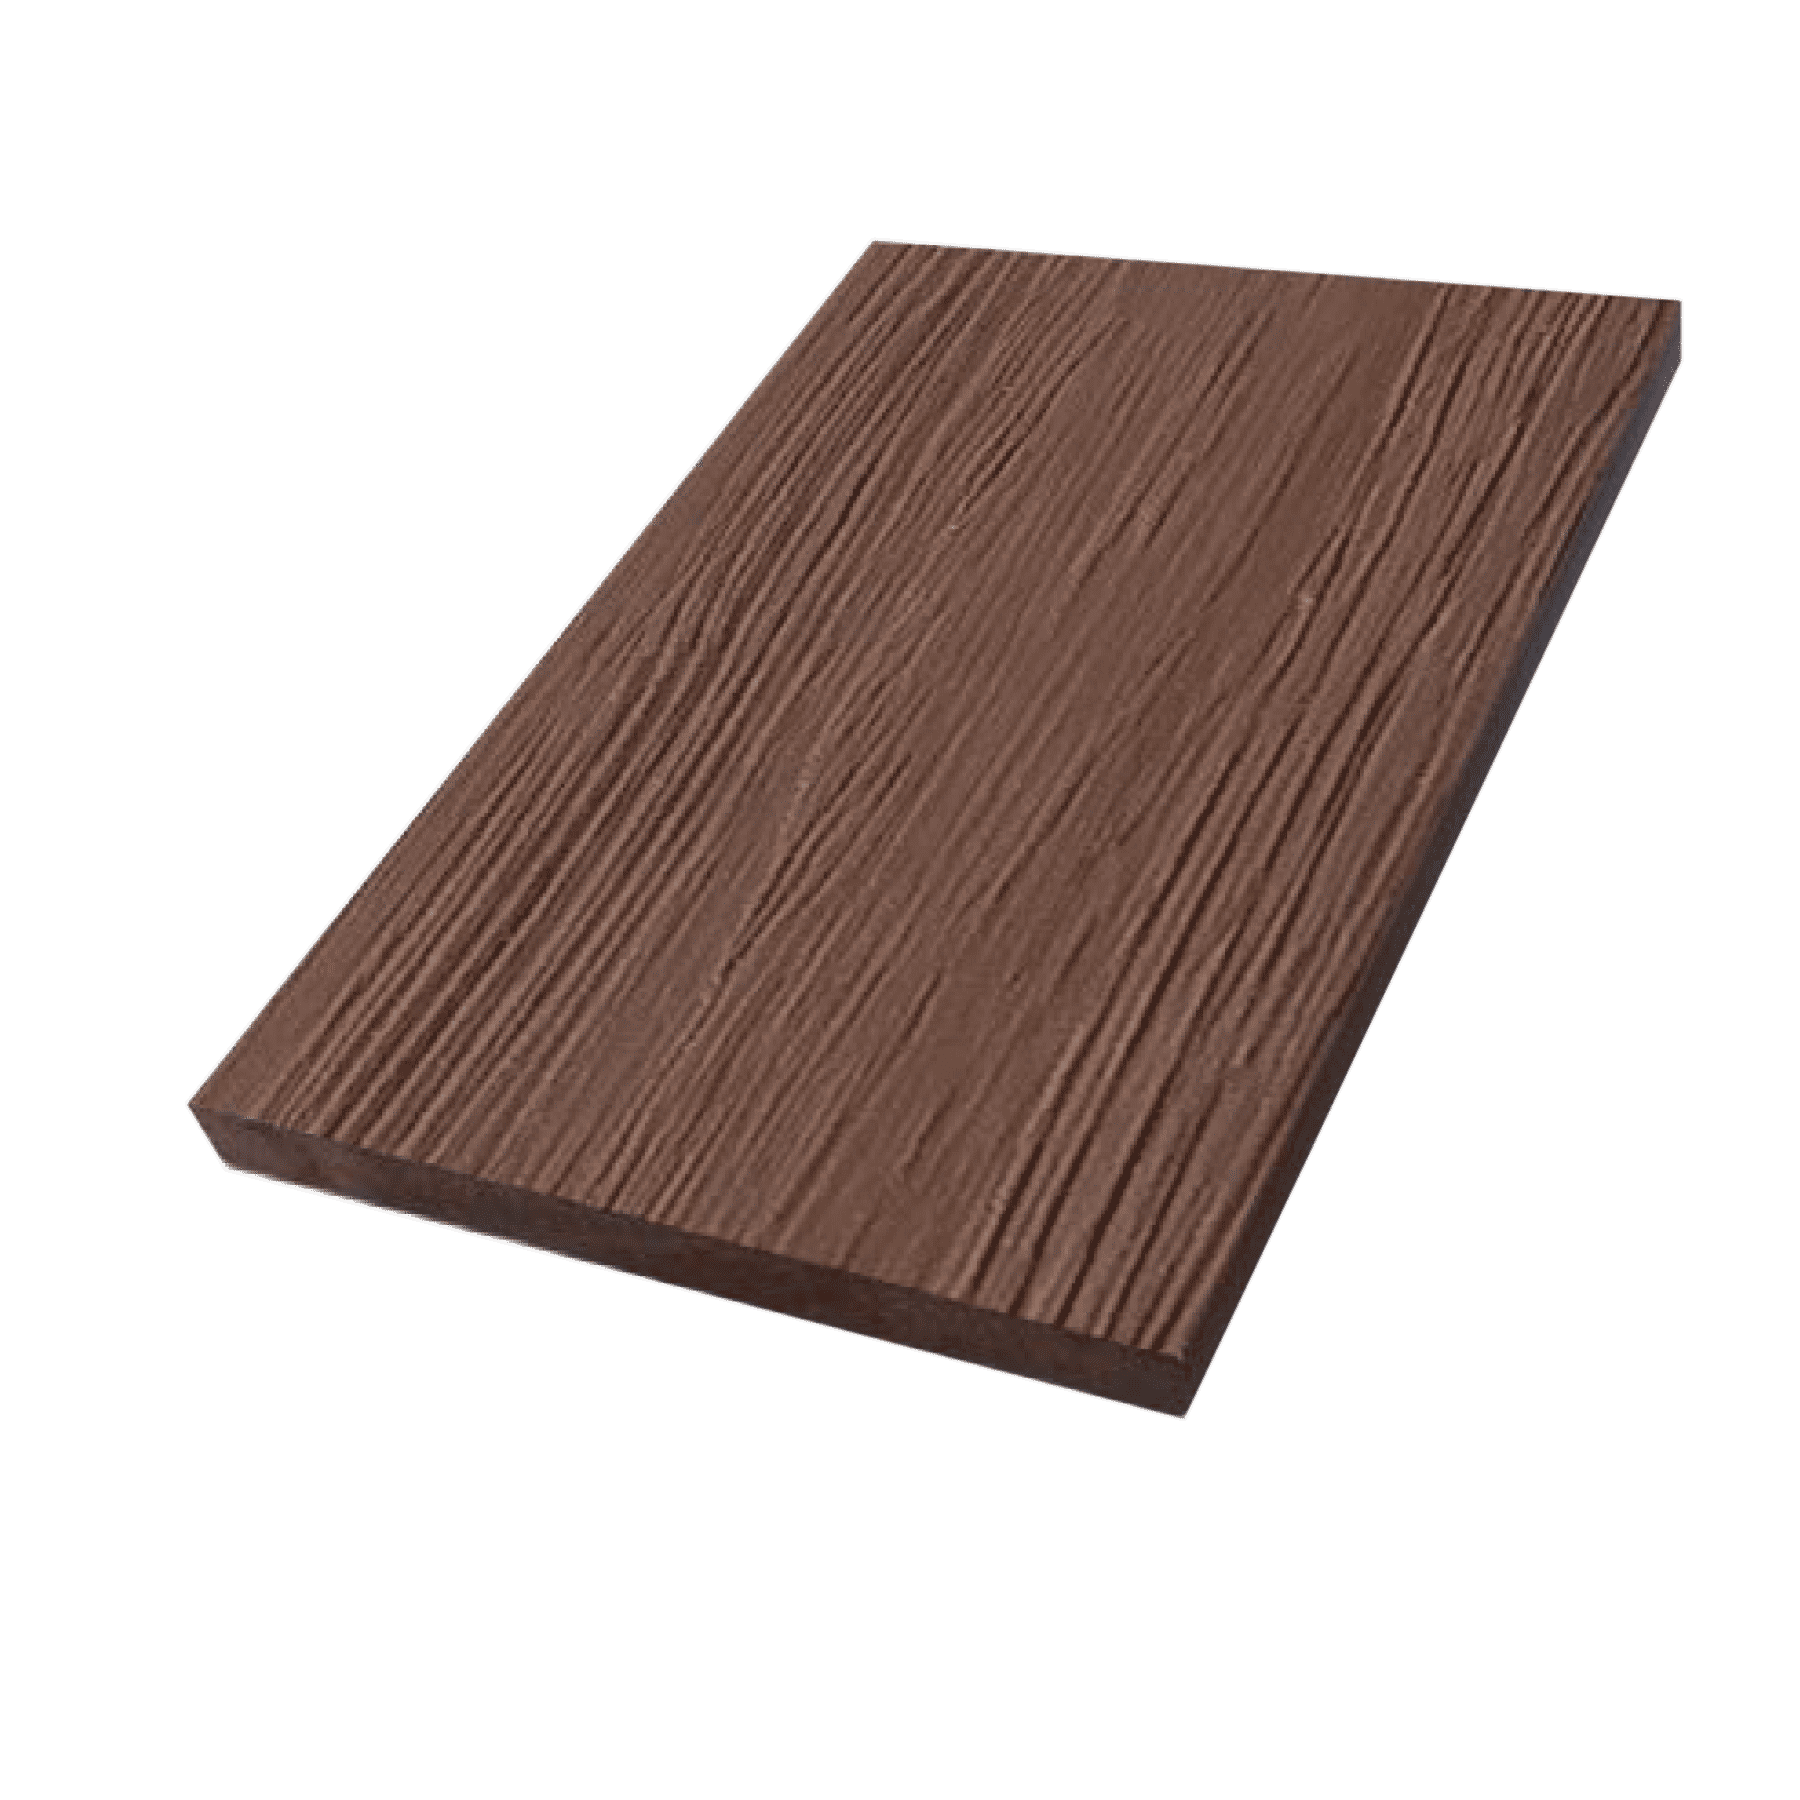 ISTSpanish-Saffron_C07_Stair-tread-Carved_wood_grain_CL1-Finish_3D-Profile